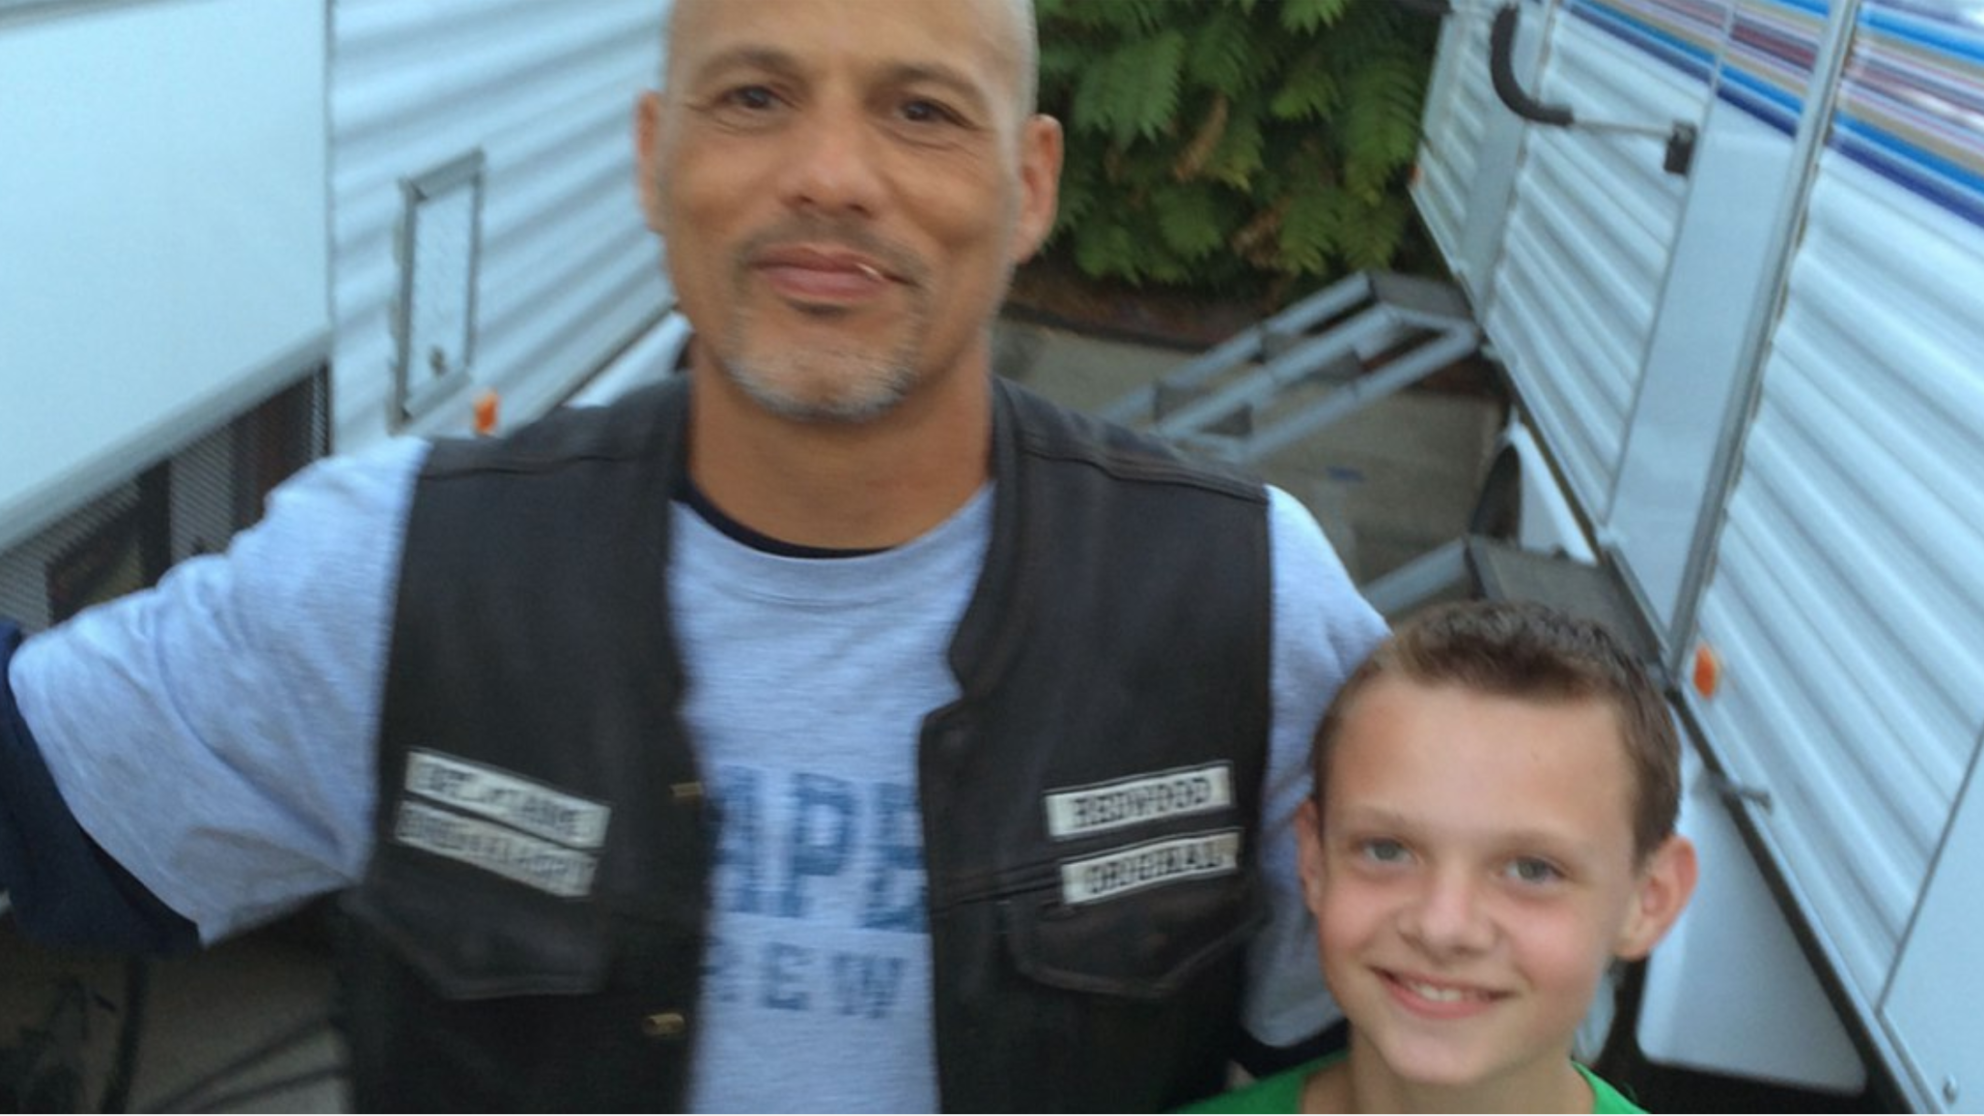 Sons of Anarchy Star Reveals 16-Year-Old Son Took His Life After a Battle With Depression